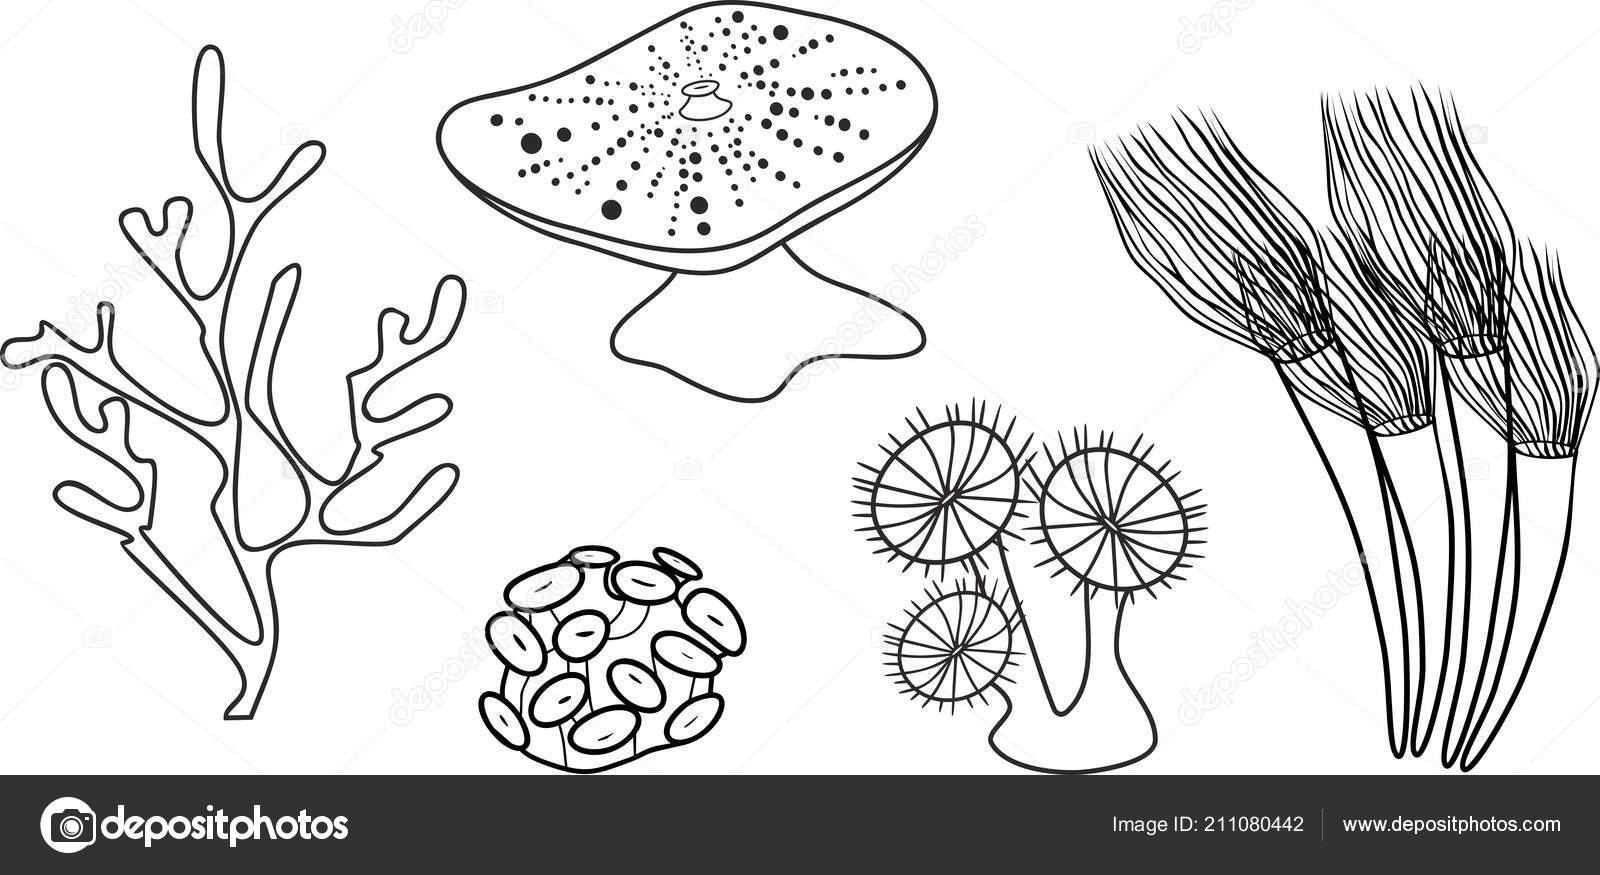 Coloring Page Different Corals Stock Vector C Mariaflaya 211080442